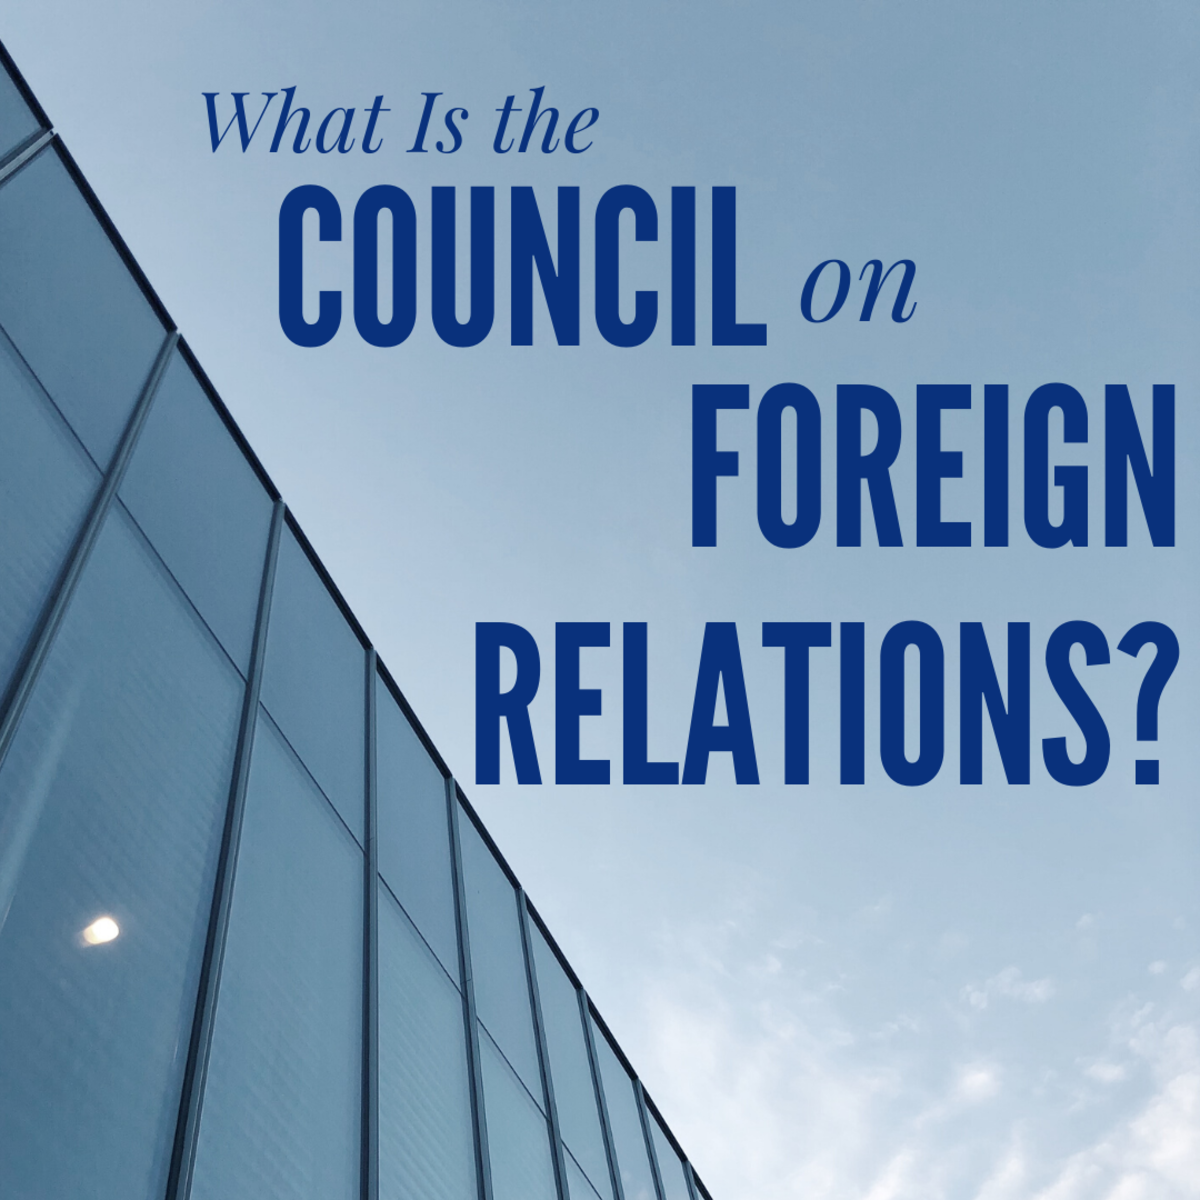 What Is the Council on Foreign Relations?